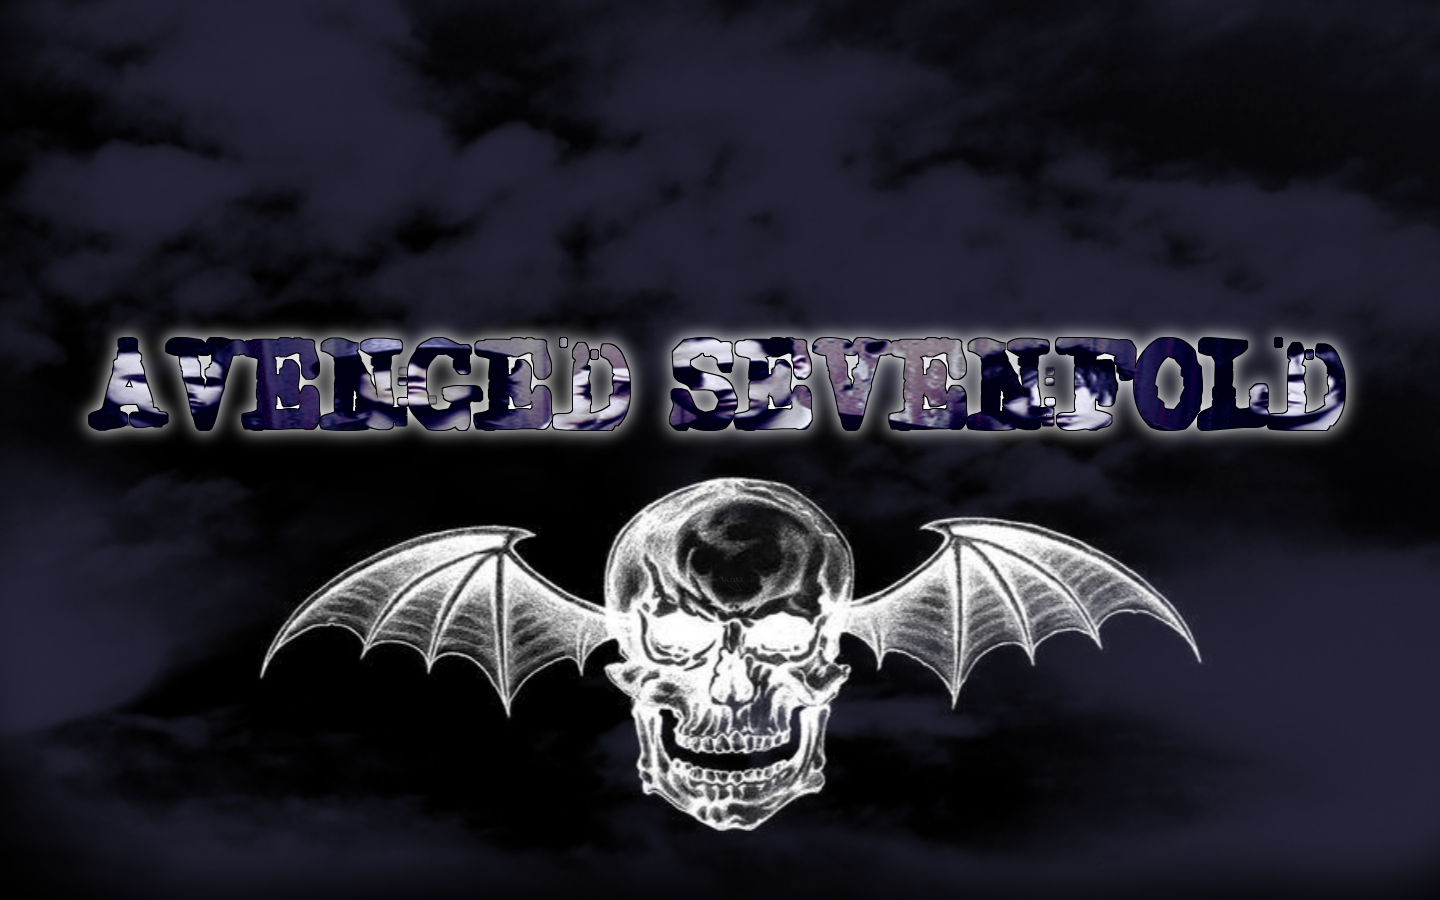 wallpapers hd for mac: Avenged Sevenfold Wallpaper High Definition